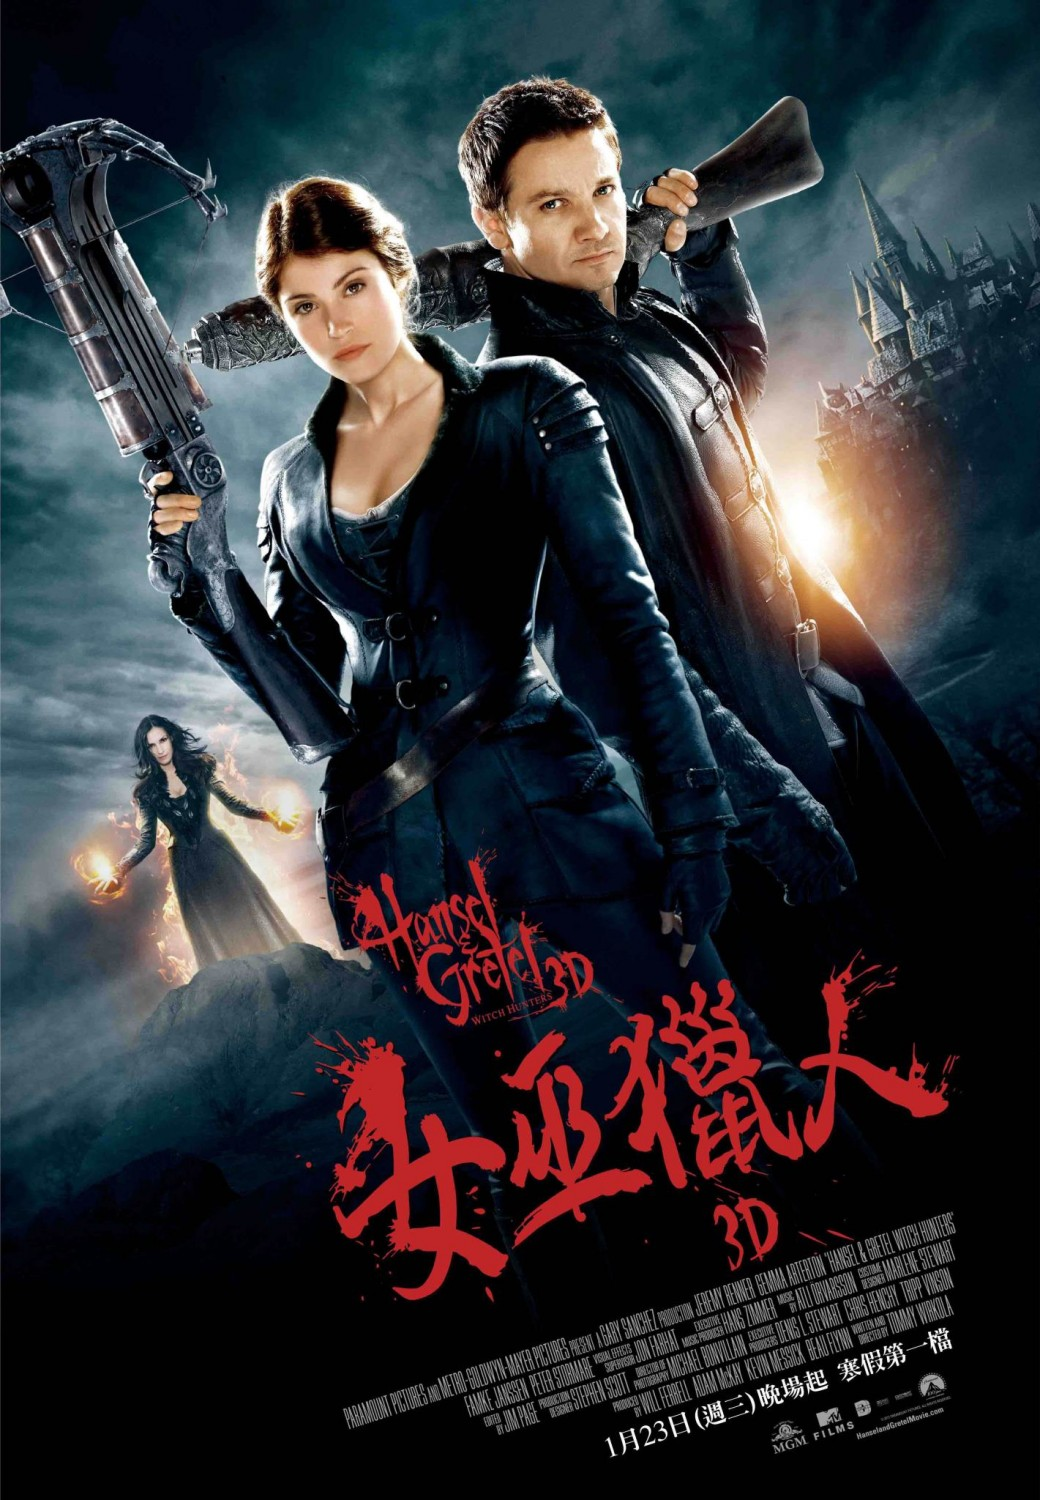 Hansel & Gretel - Witch Hunters (2013)